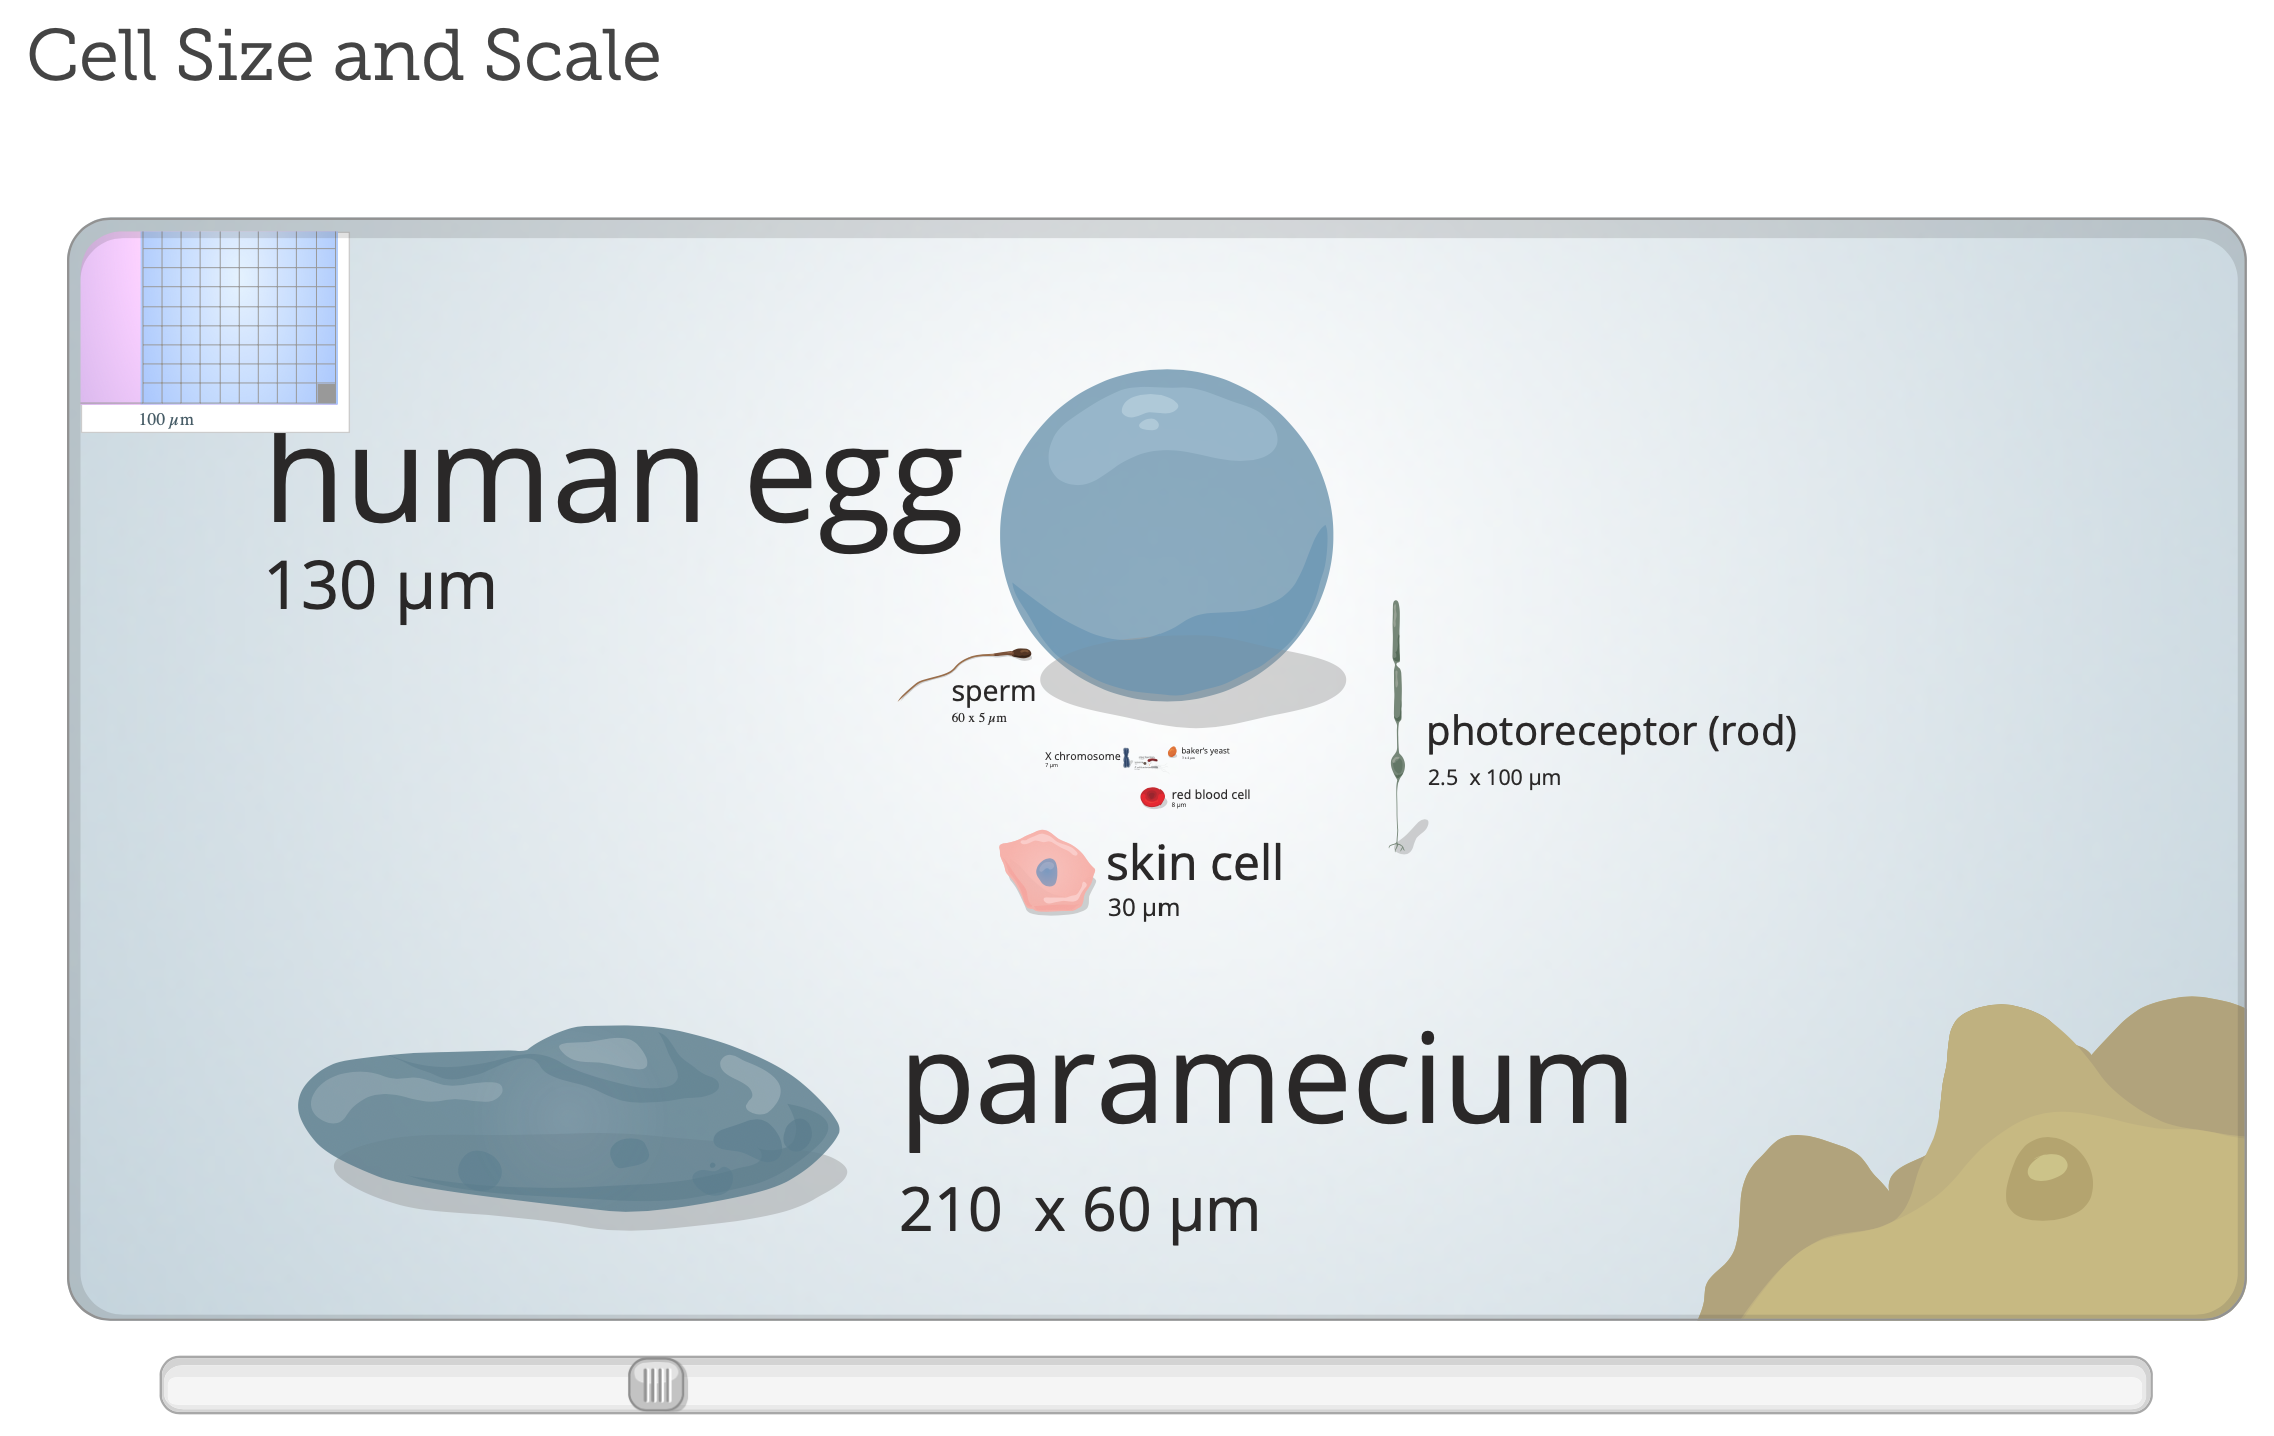 I can't stop studying this chat. I swear, I'm fascinated by the size of various molecules and organisms!